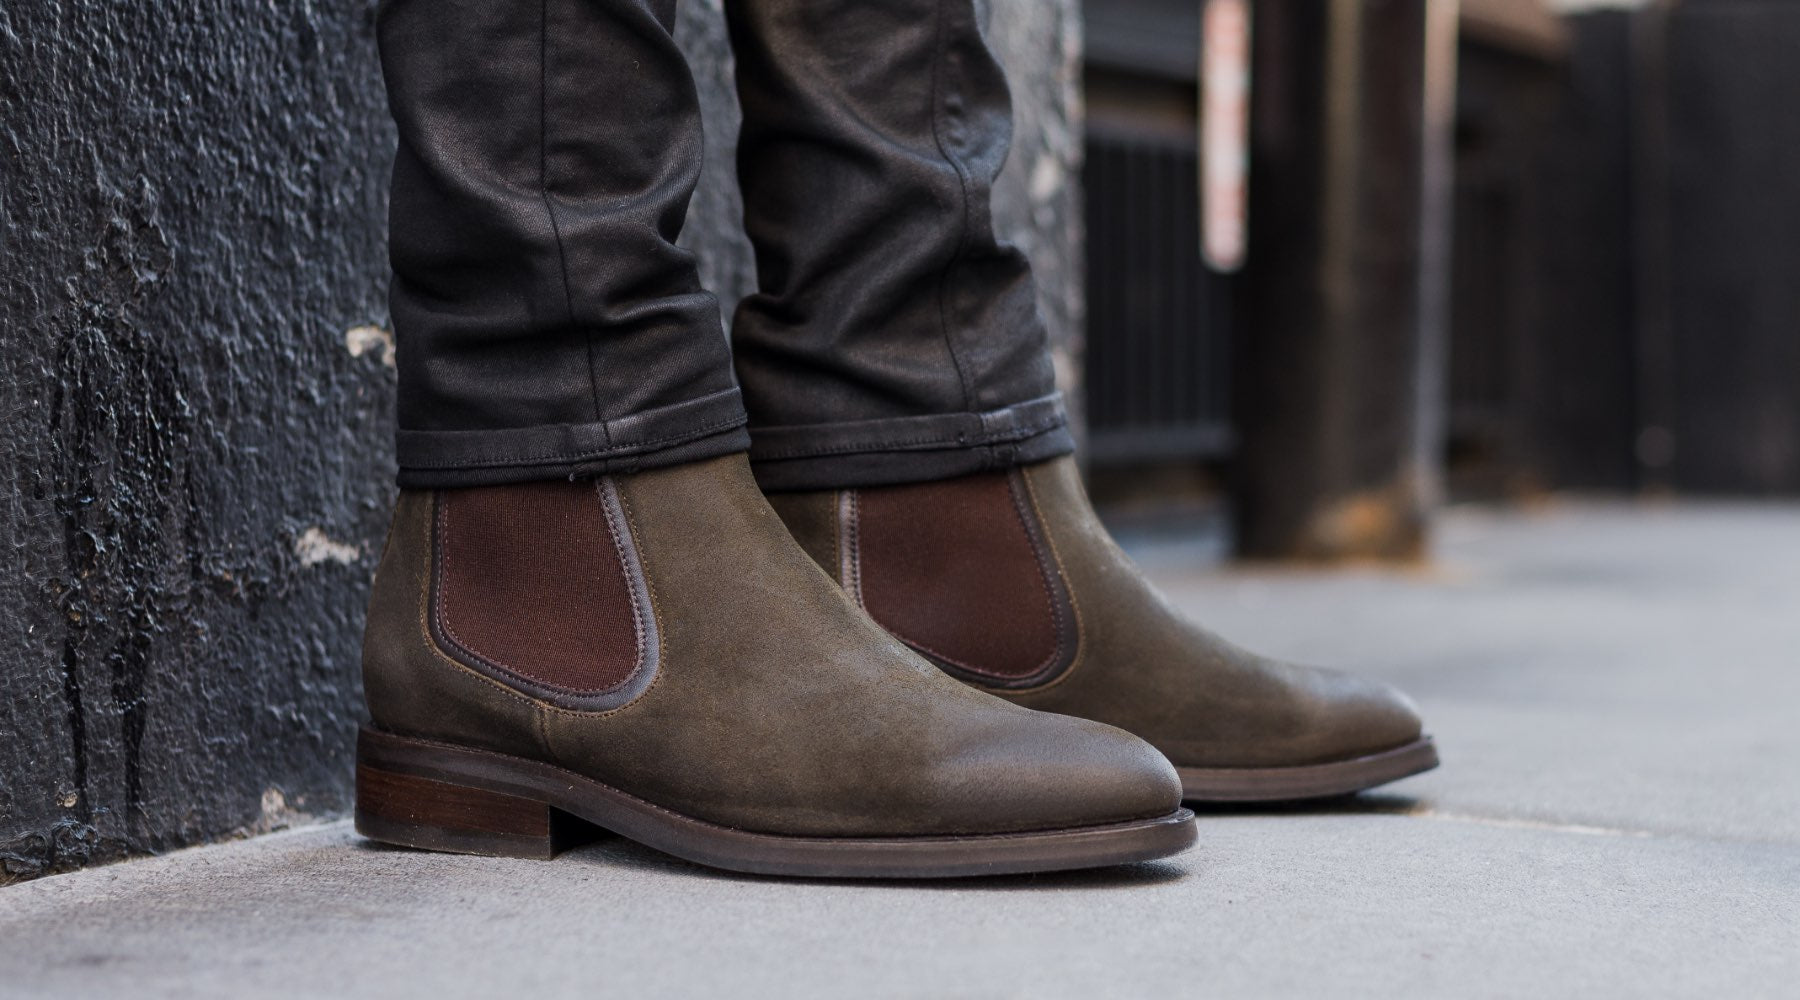 The Best Men's Chelsea Boots: The Dark Olive Suede Duke